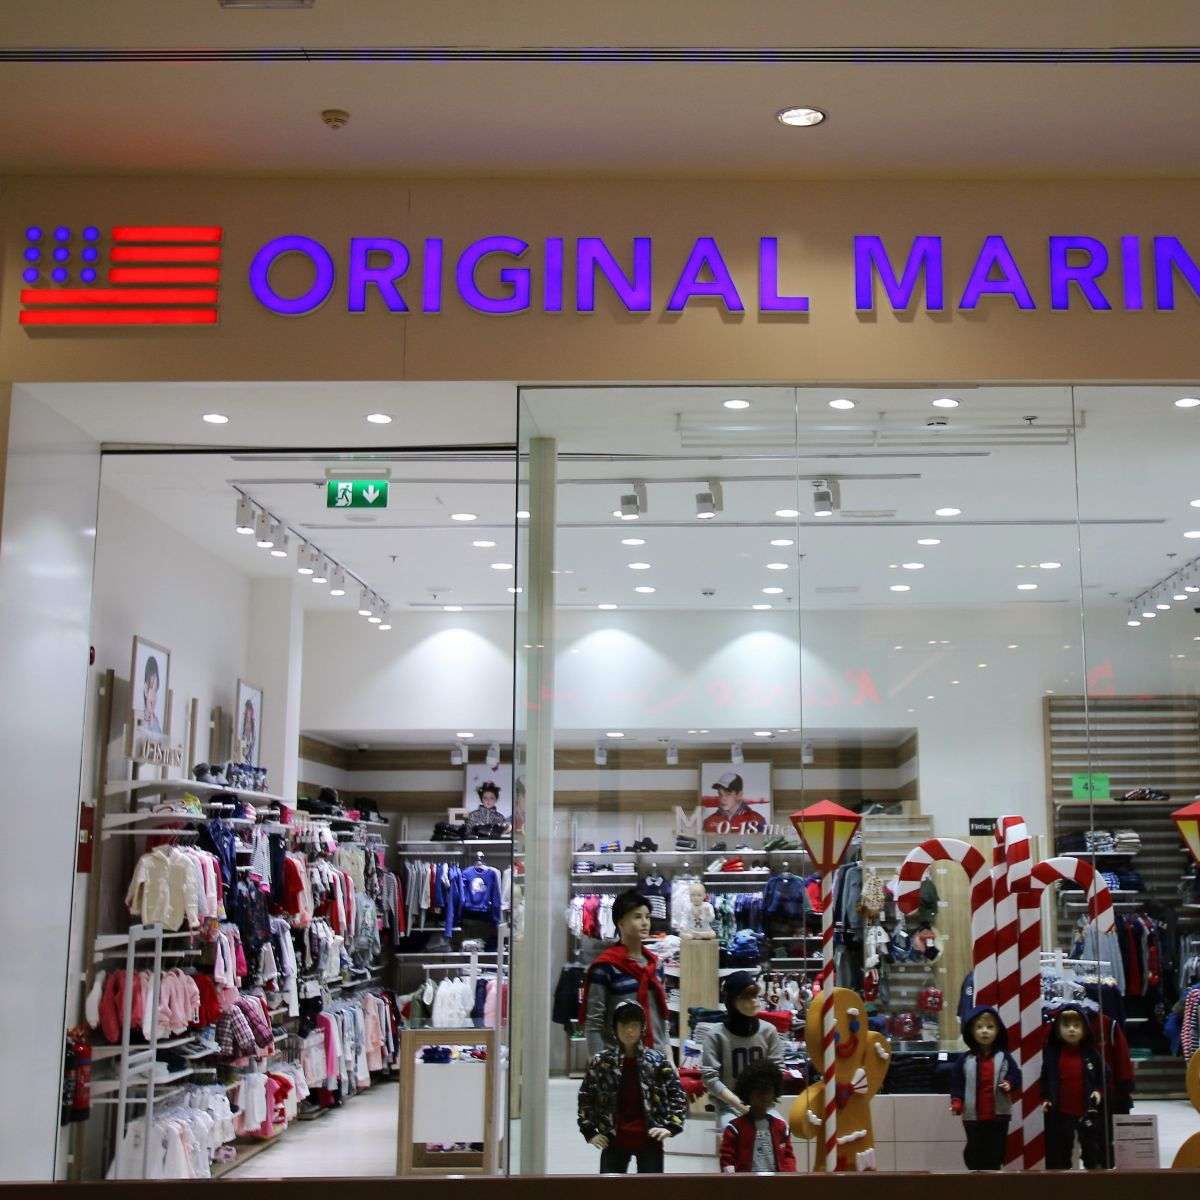 ORIGINAL MARINES - OUTLET MALL